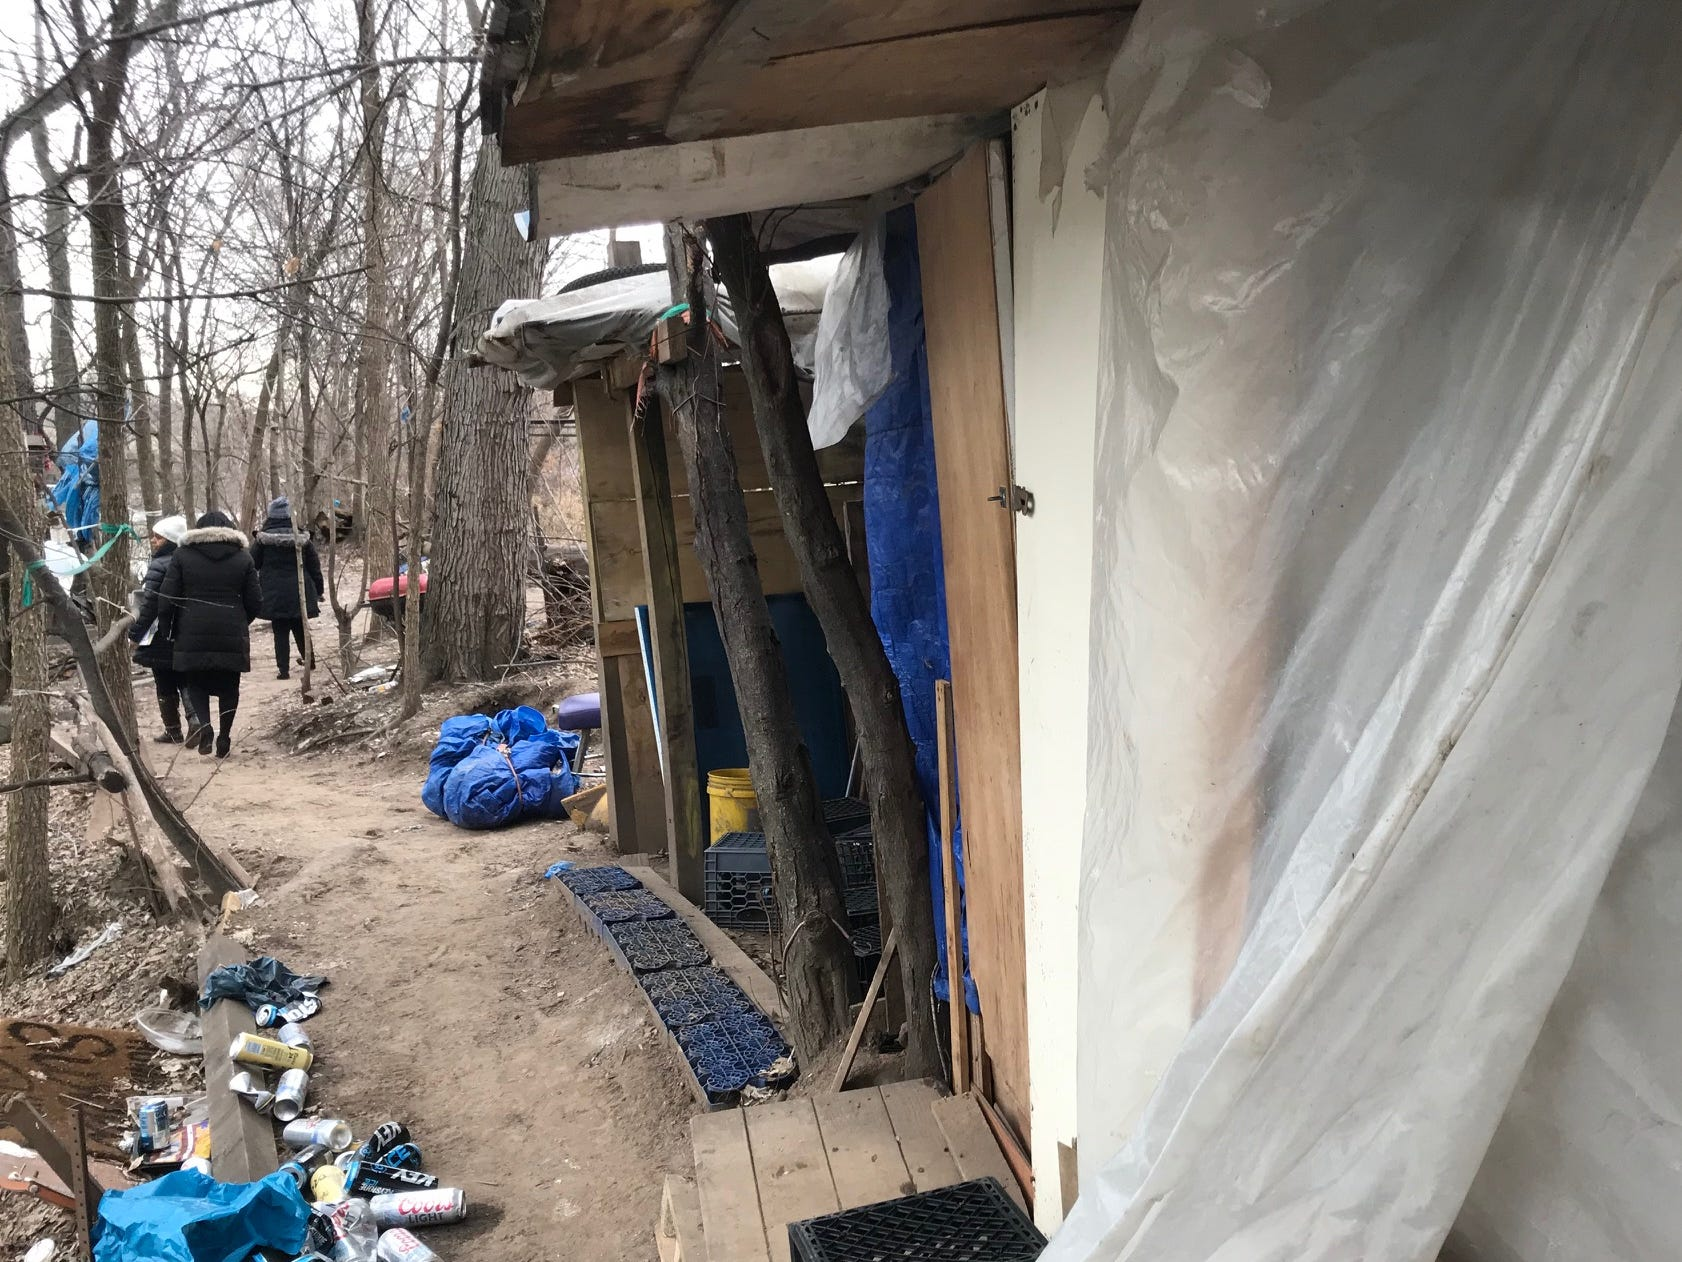 Members of City of  Passaic's Human Services department walk through homeless encampment on Dundee Island Wednesday as they try to get a tally of the number of homeless folk in the city. The tally was northward of 30 people.